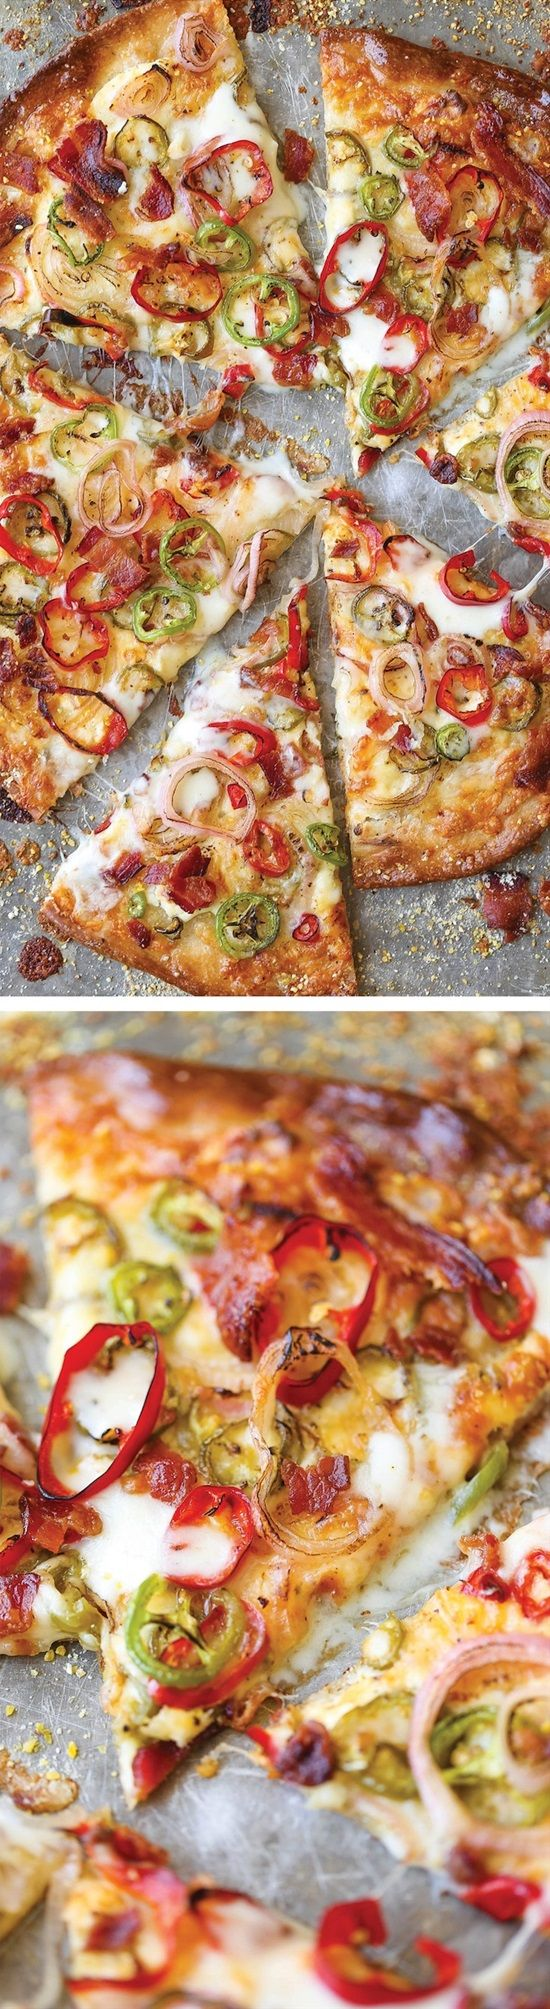 16 Must-Try Homemade Pizza Recipes